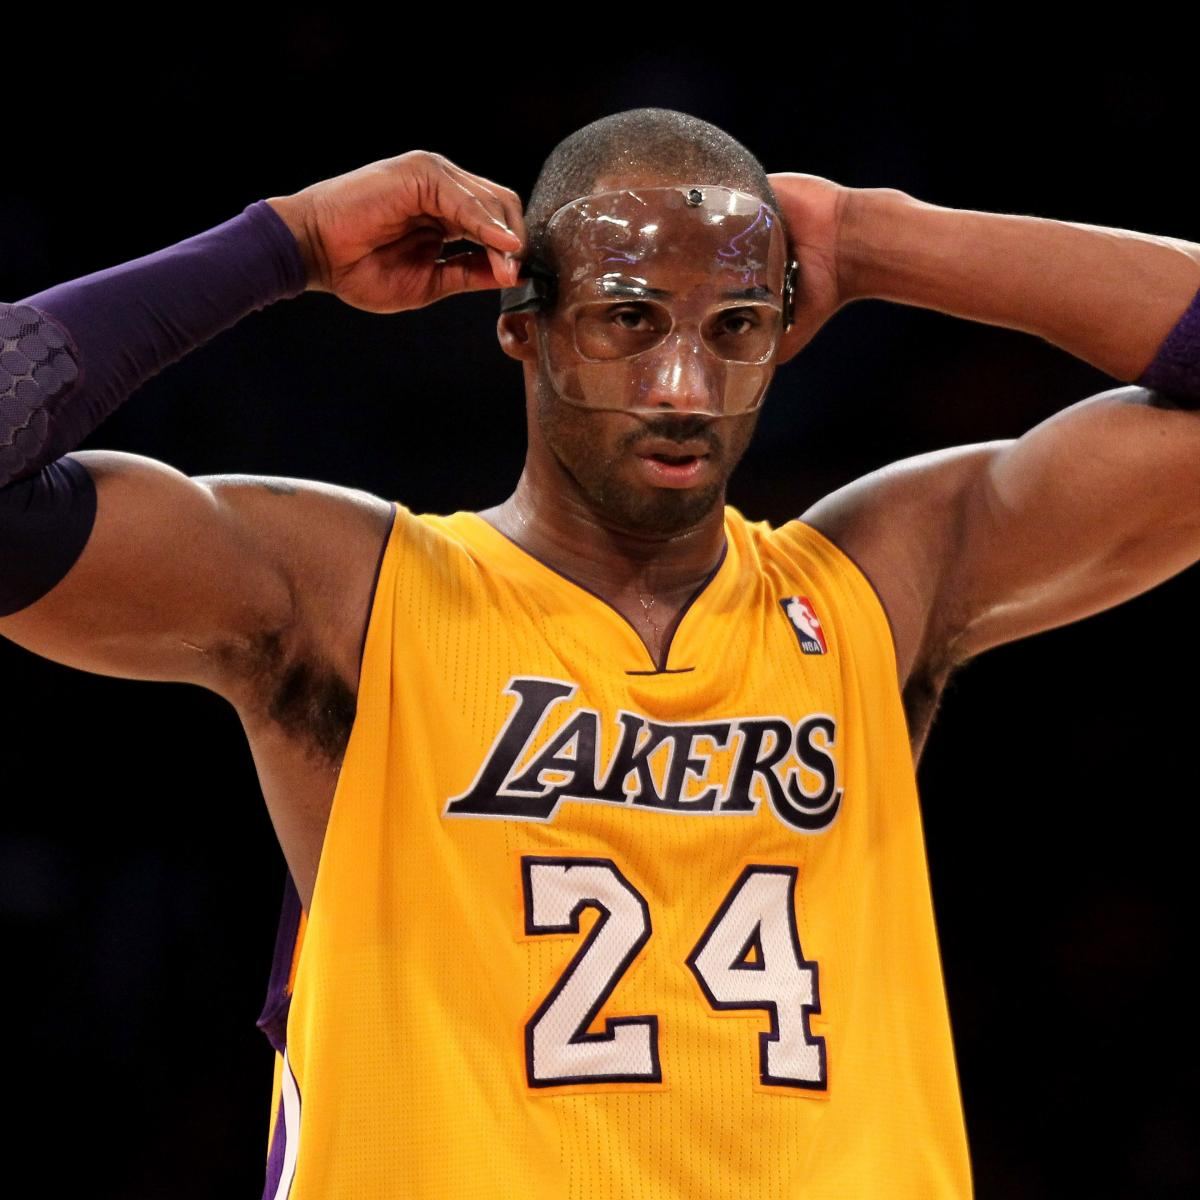 Kobe Bryant Game-Worn Protective Face Mask to Be Auctioned Off, Could Fetch $50K